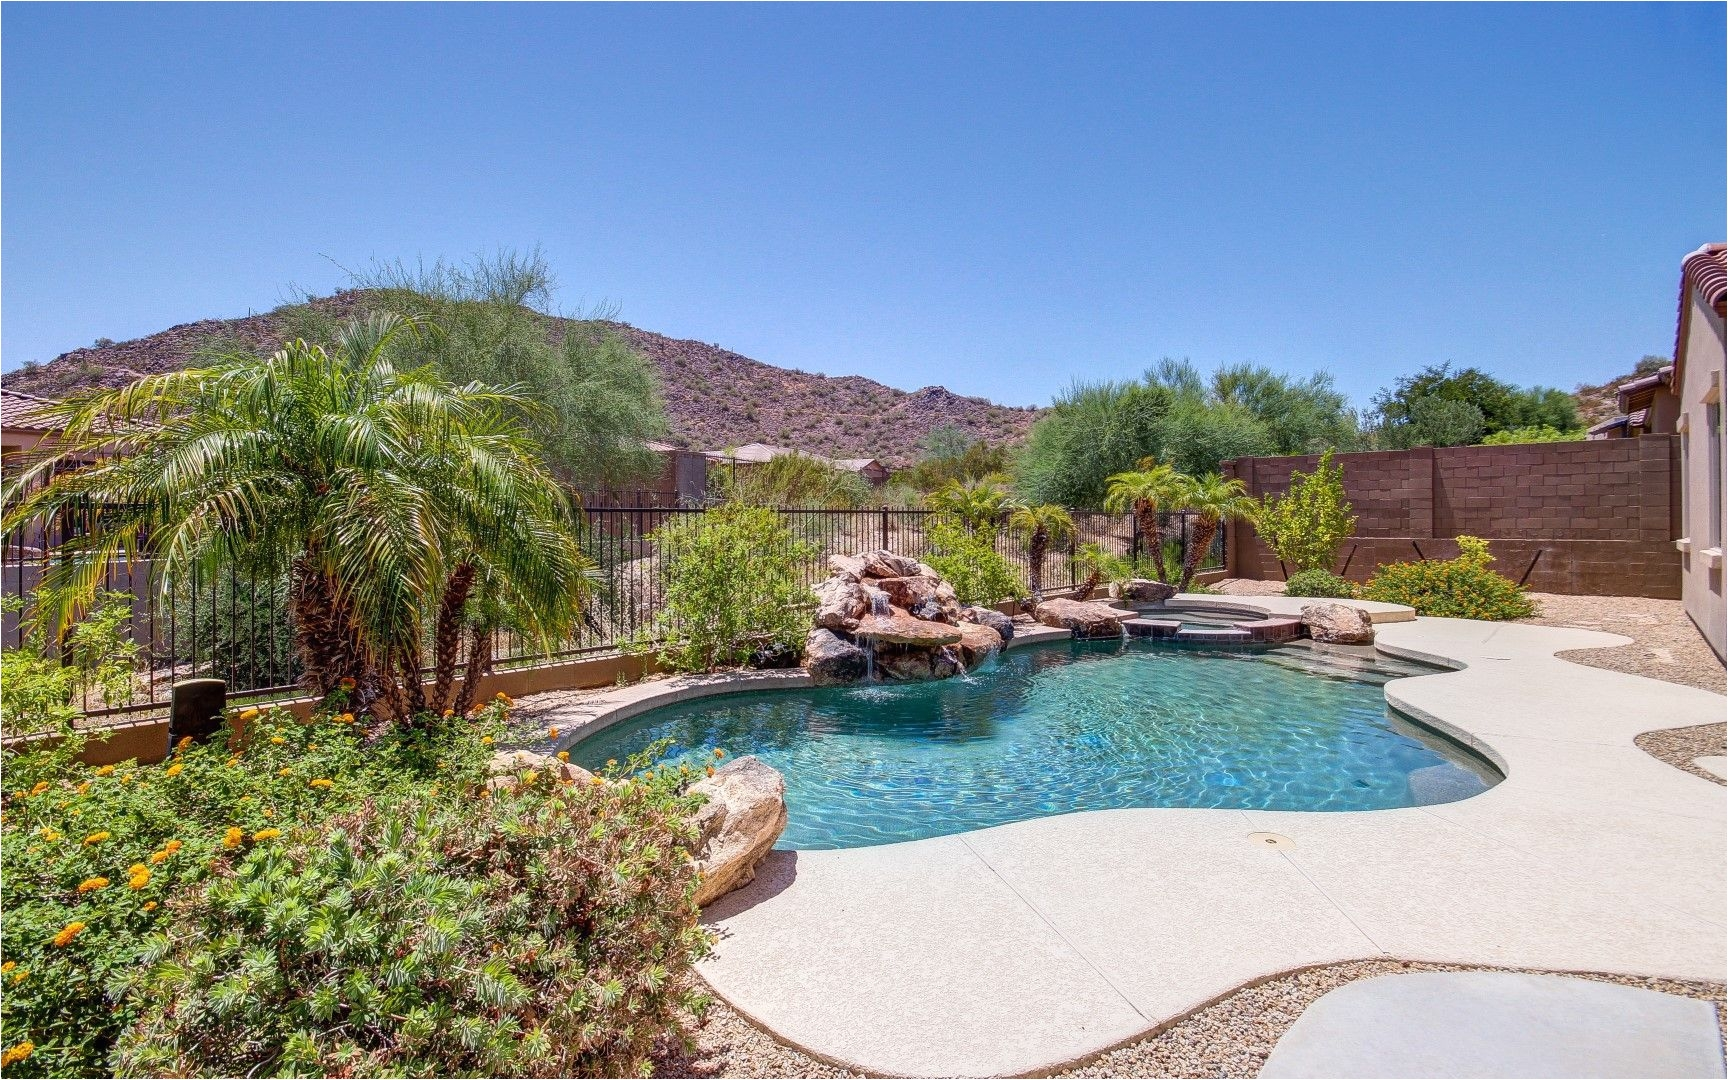 homes with pools and 5 bedrooms in nw phoenix areas azmegahomes realestate